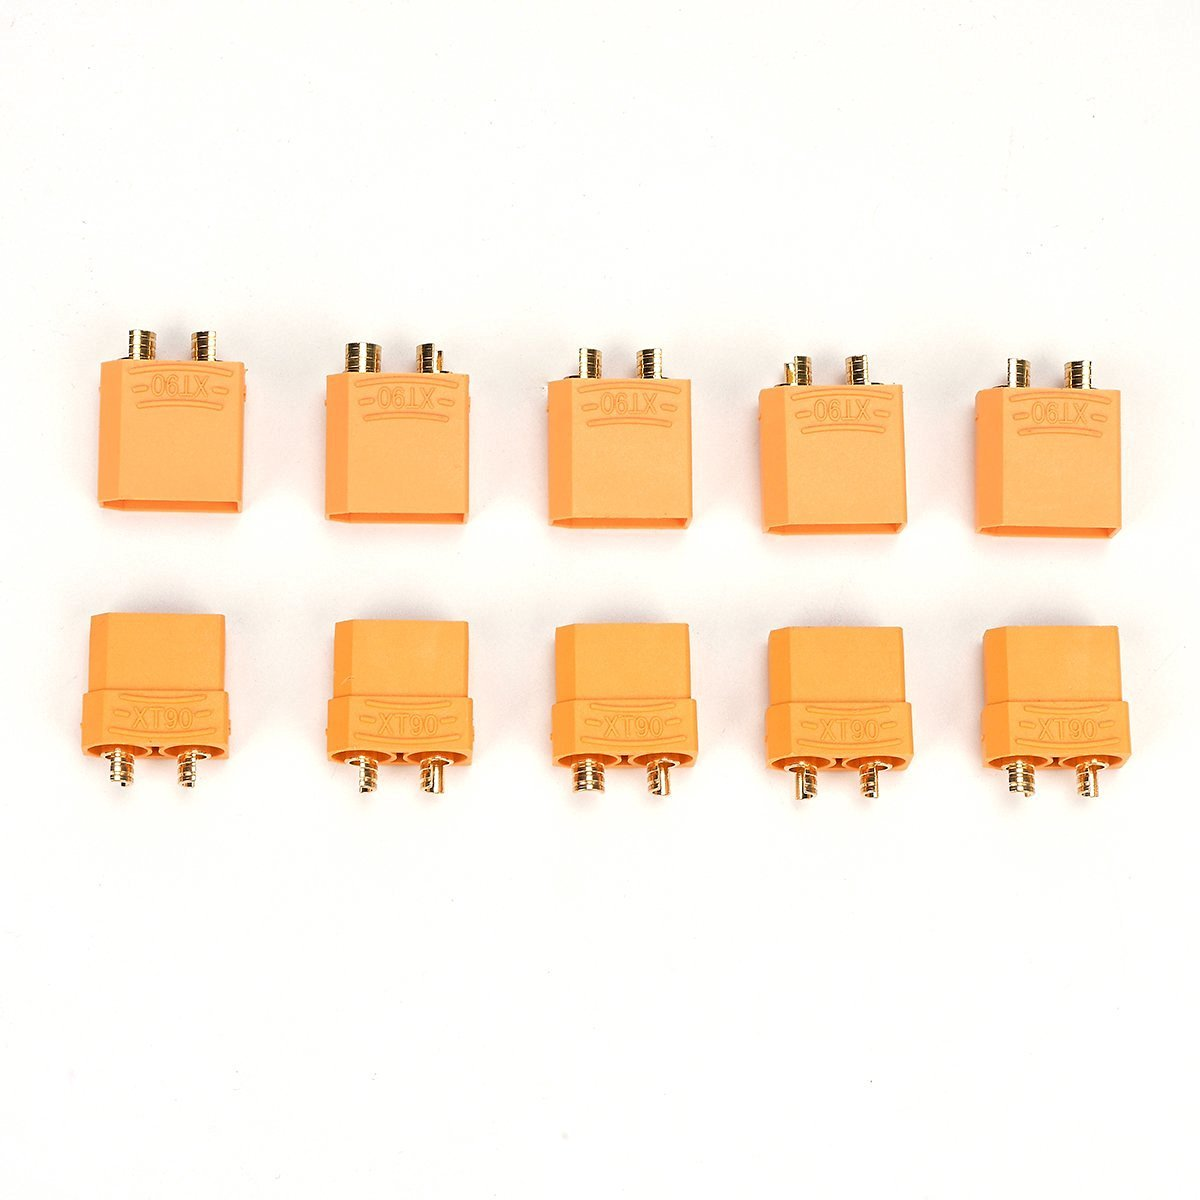 H88 10 pcs XT90 Banana Plug Bullet Connector 8AWG For RC LiPo Battery